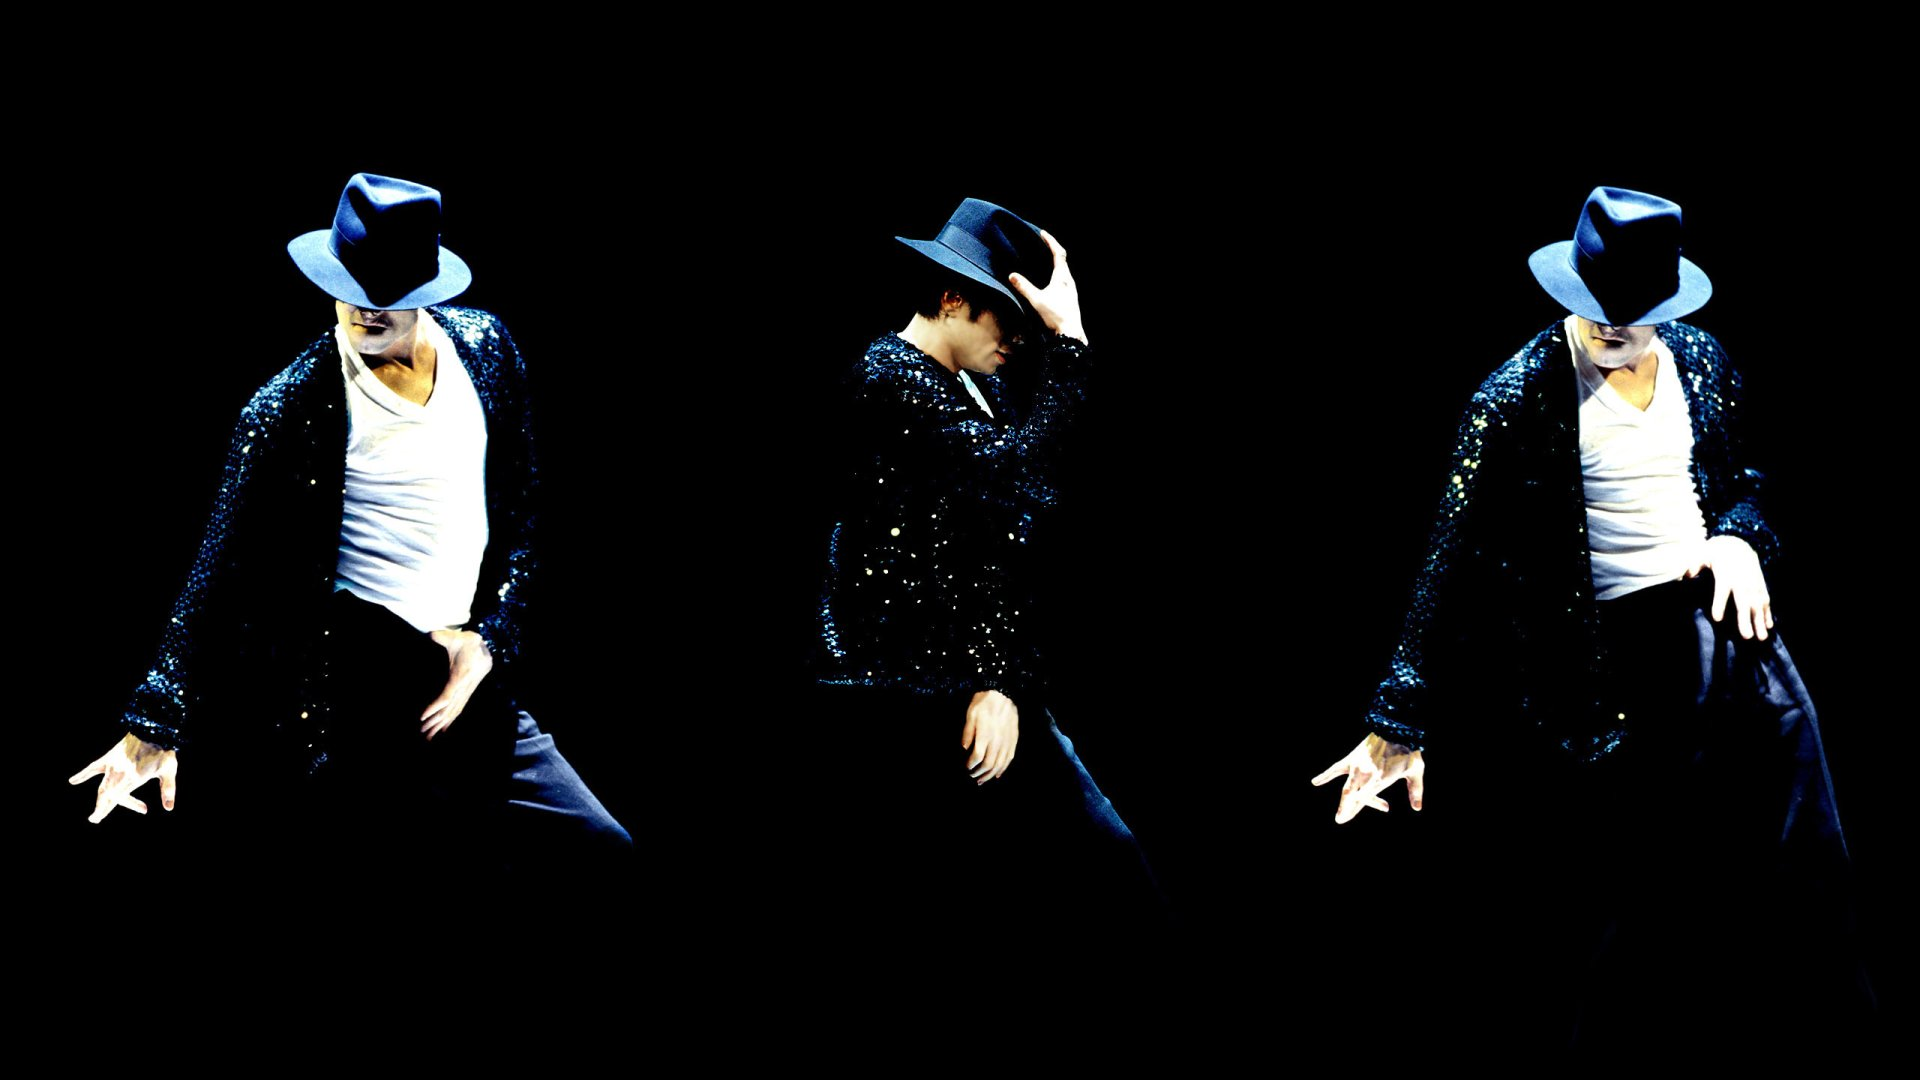 Music - Michael Jackson  Music King of Pop Wallpaper